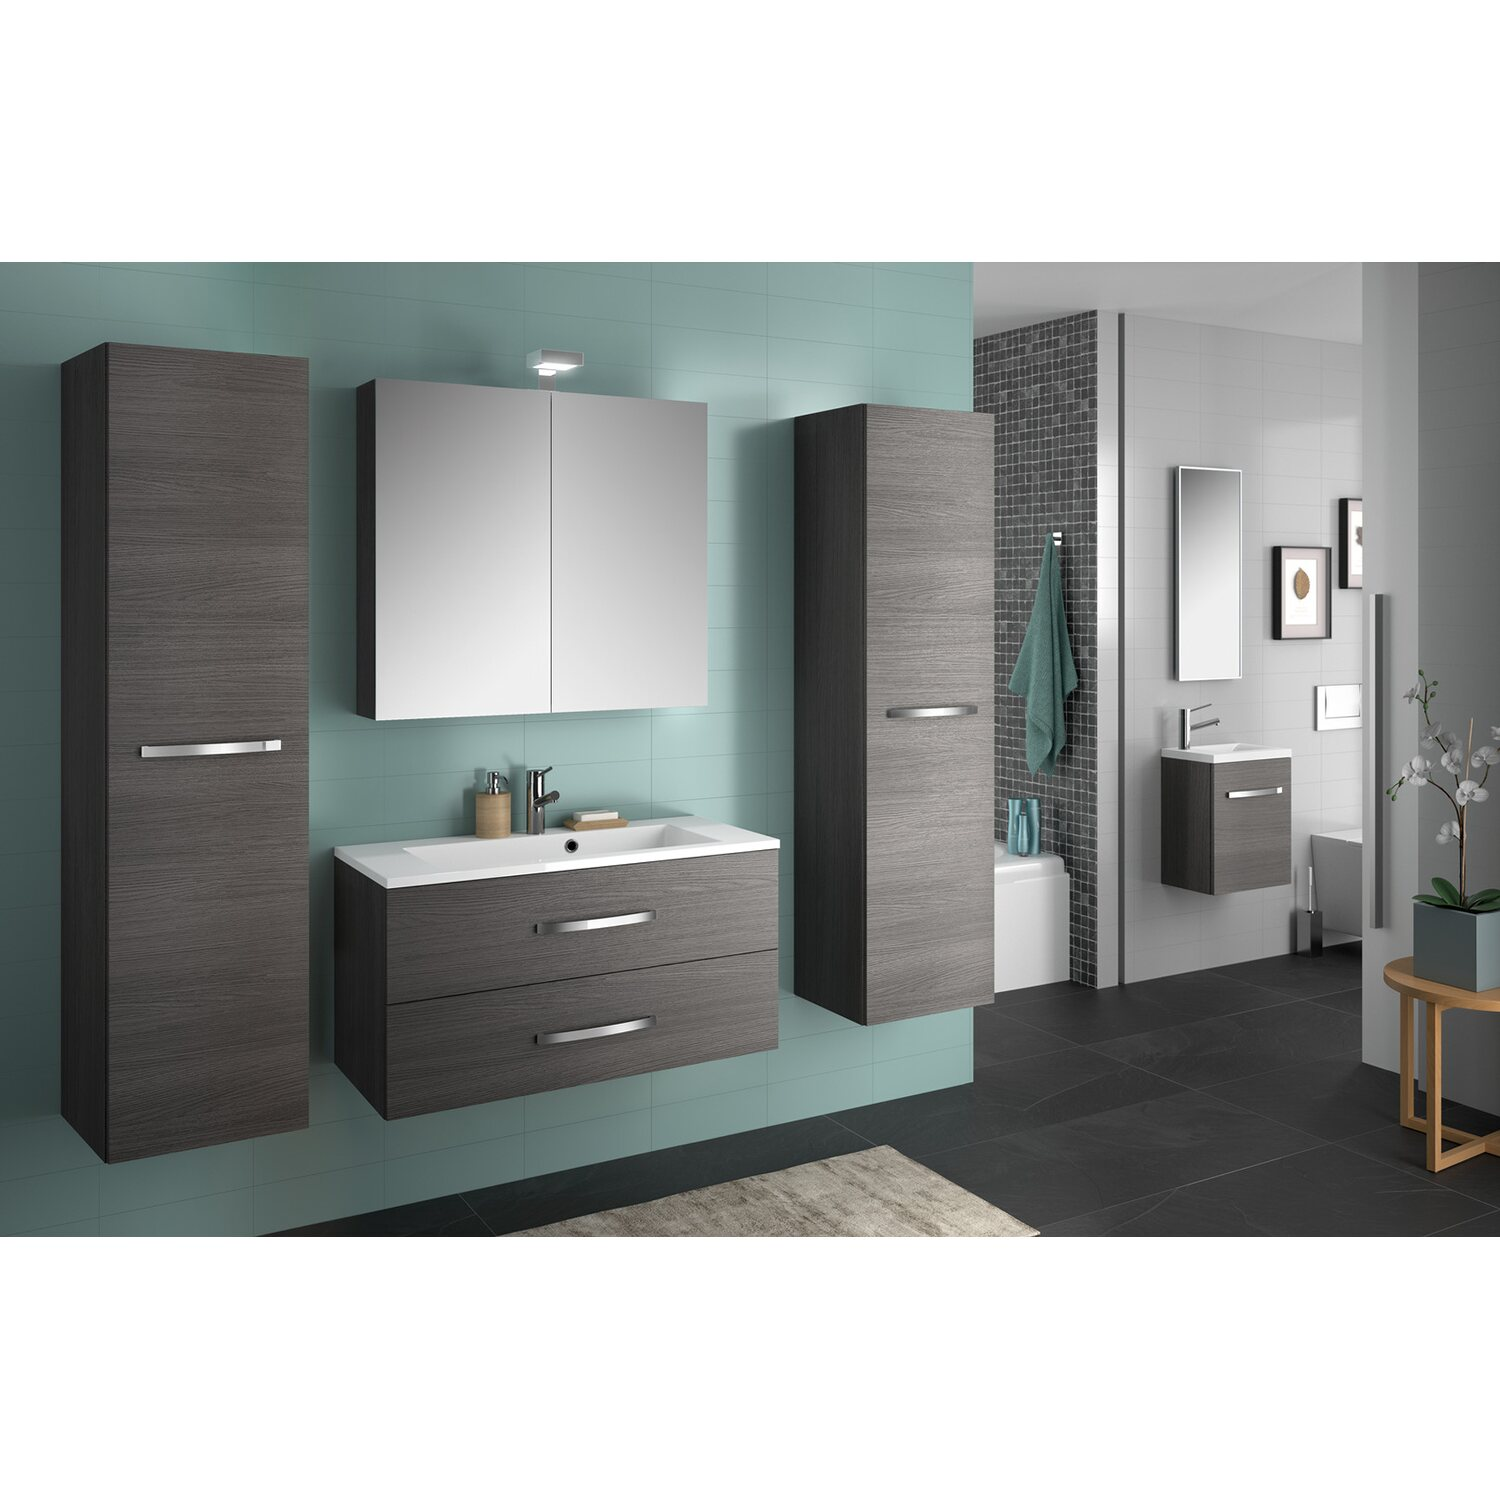 allibert badm bel set adept eiche grau 90 cm 5 teilig eek a kaufen bei obi. Black Bedroom Furniture Sets. Home Design Ideas